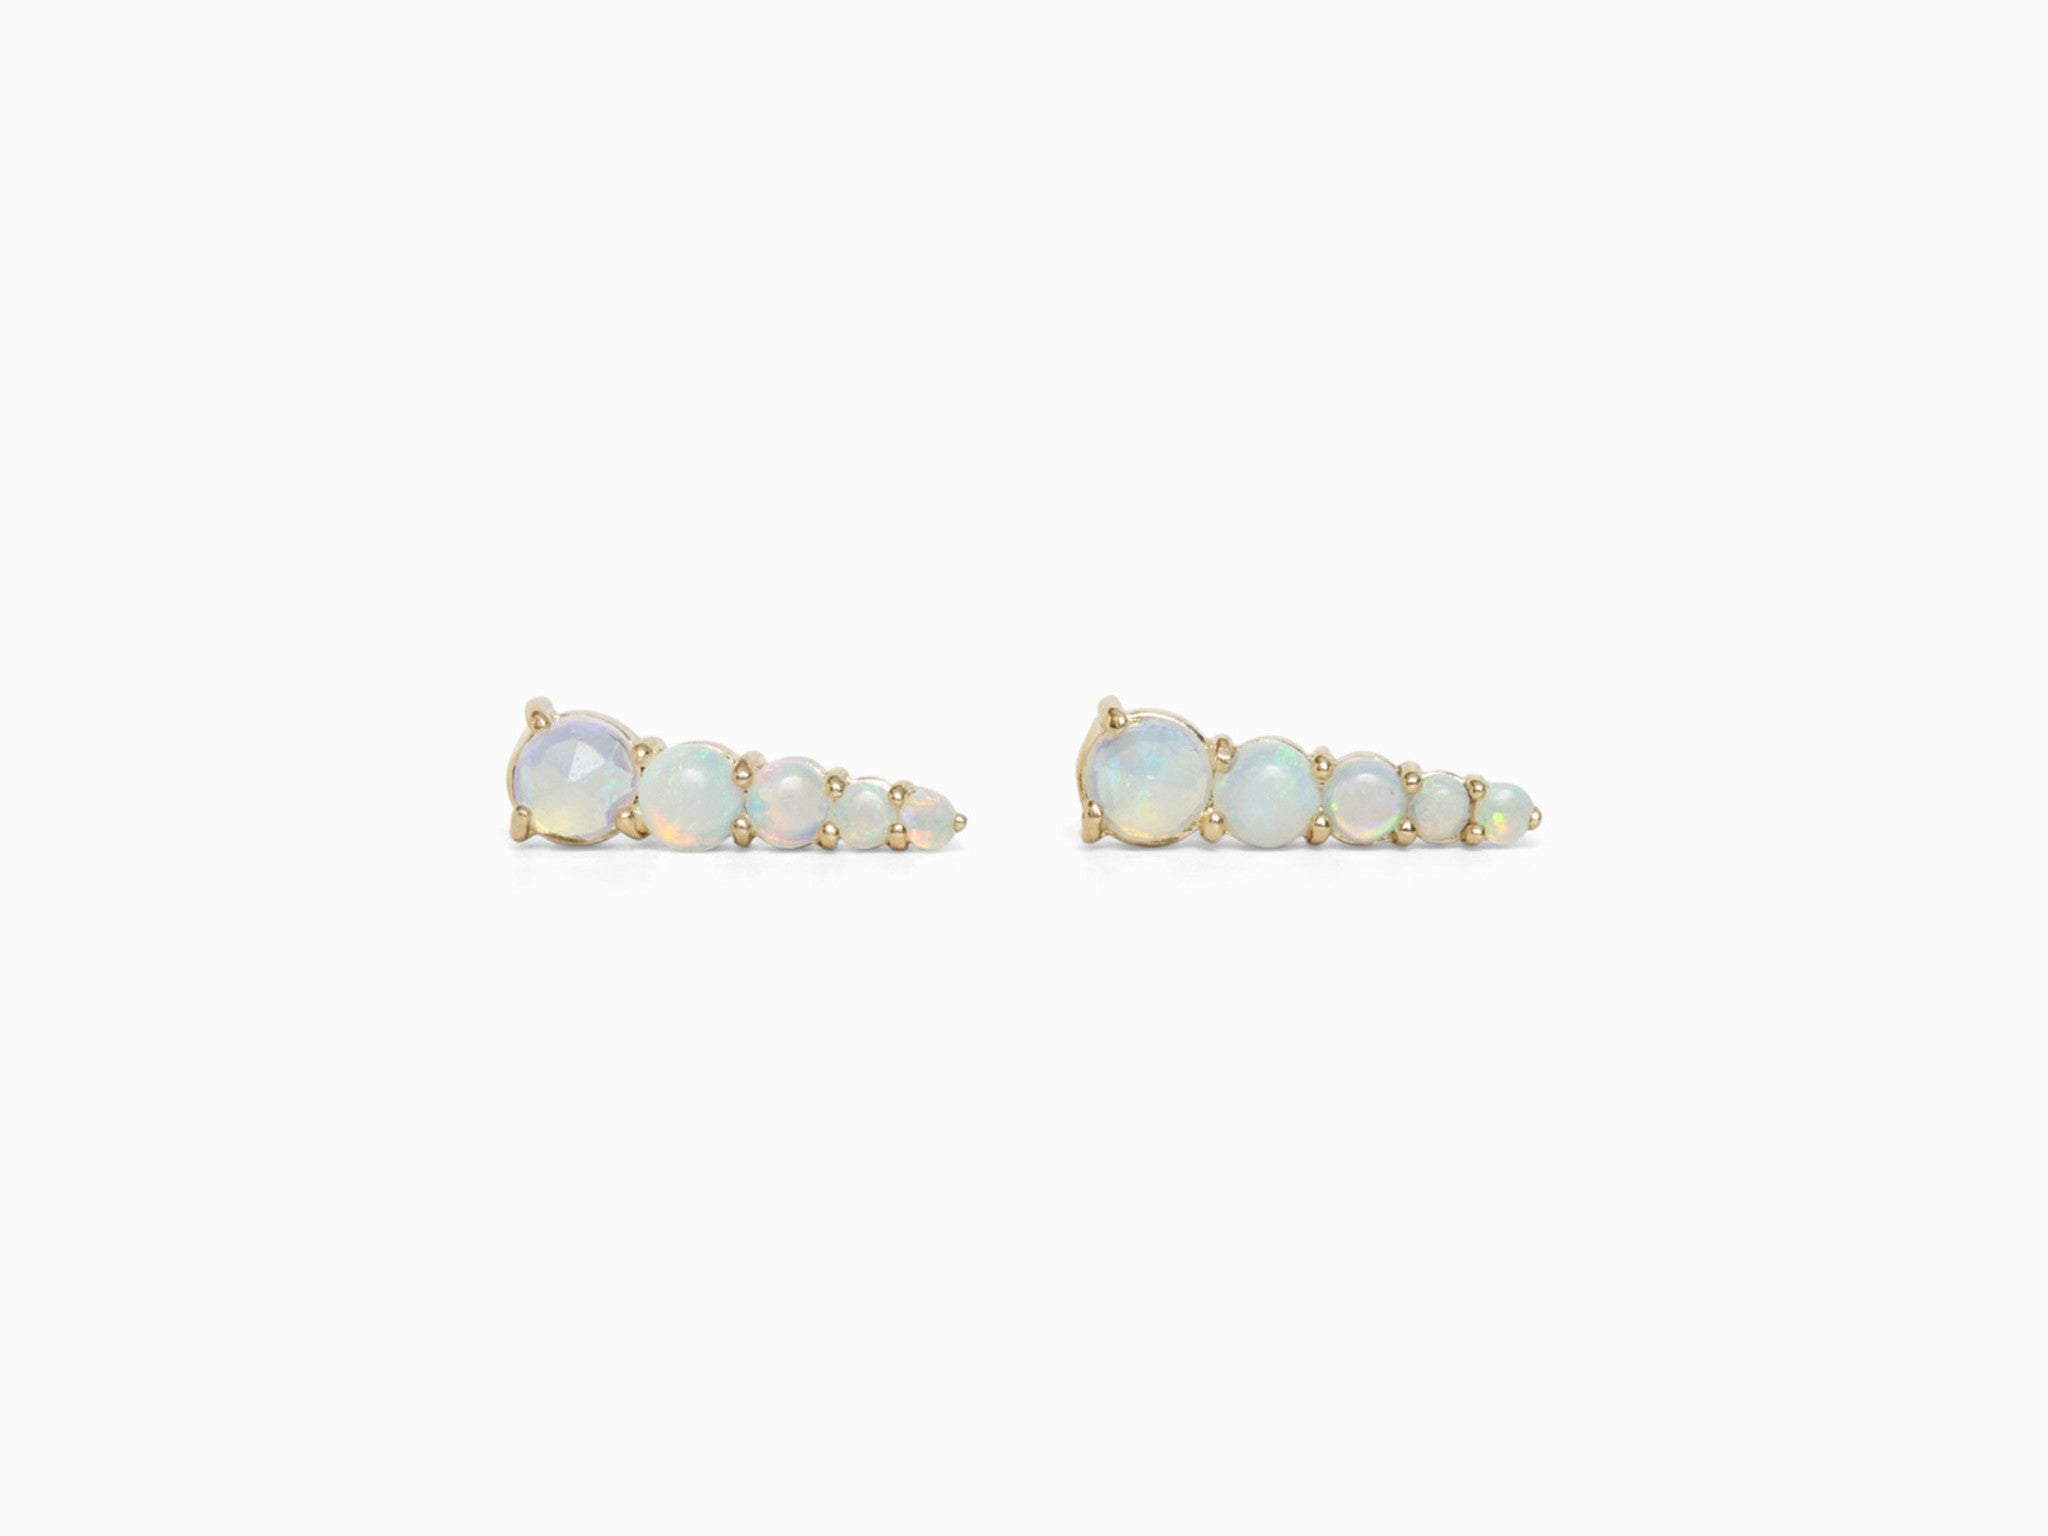 Hydra Stud Earrings - In Stock Now